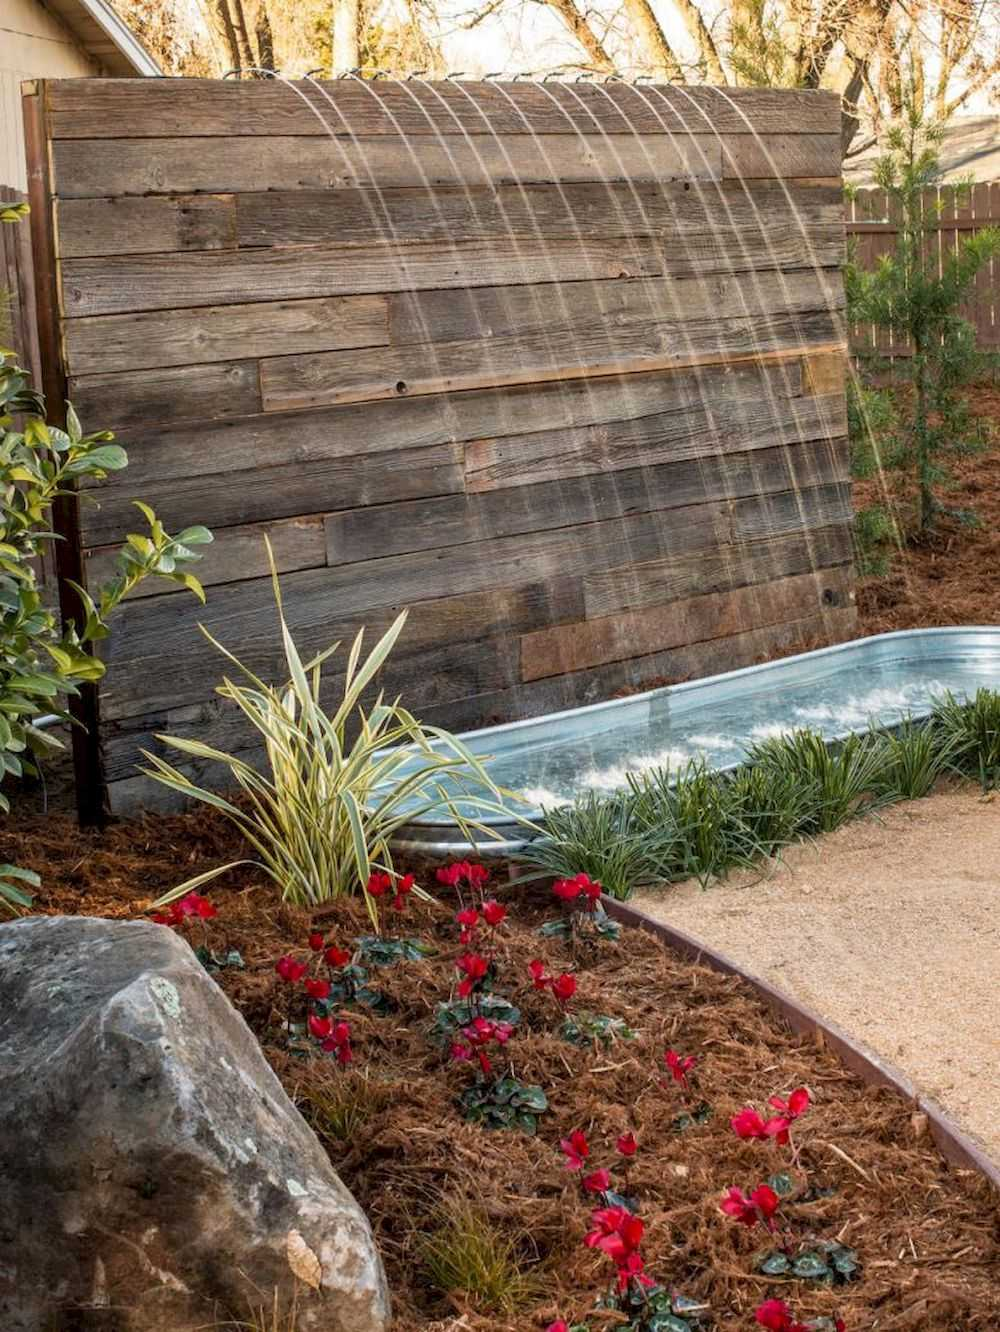 Stone Pavers Is The Best Way To Cover The Area Around Stone Waterfall